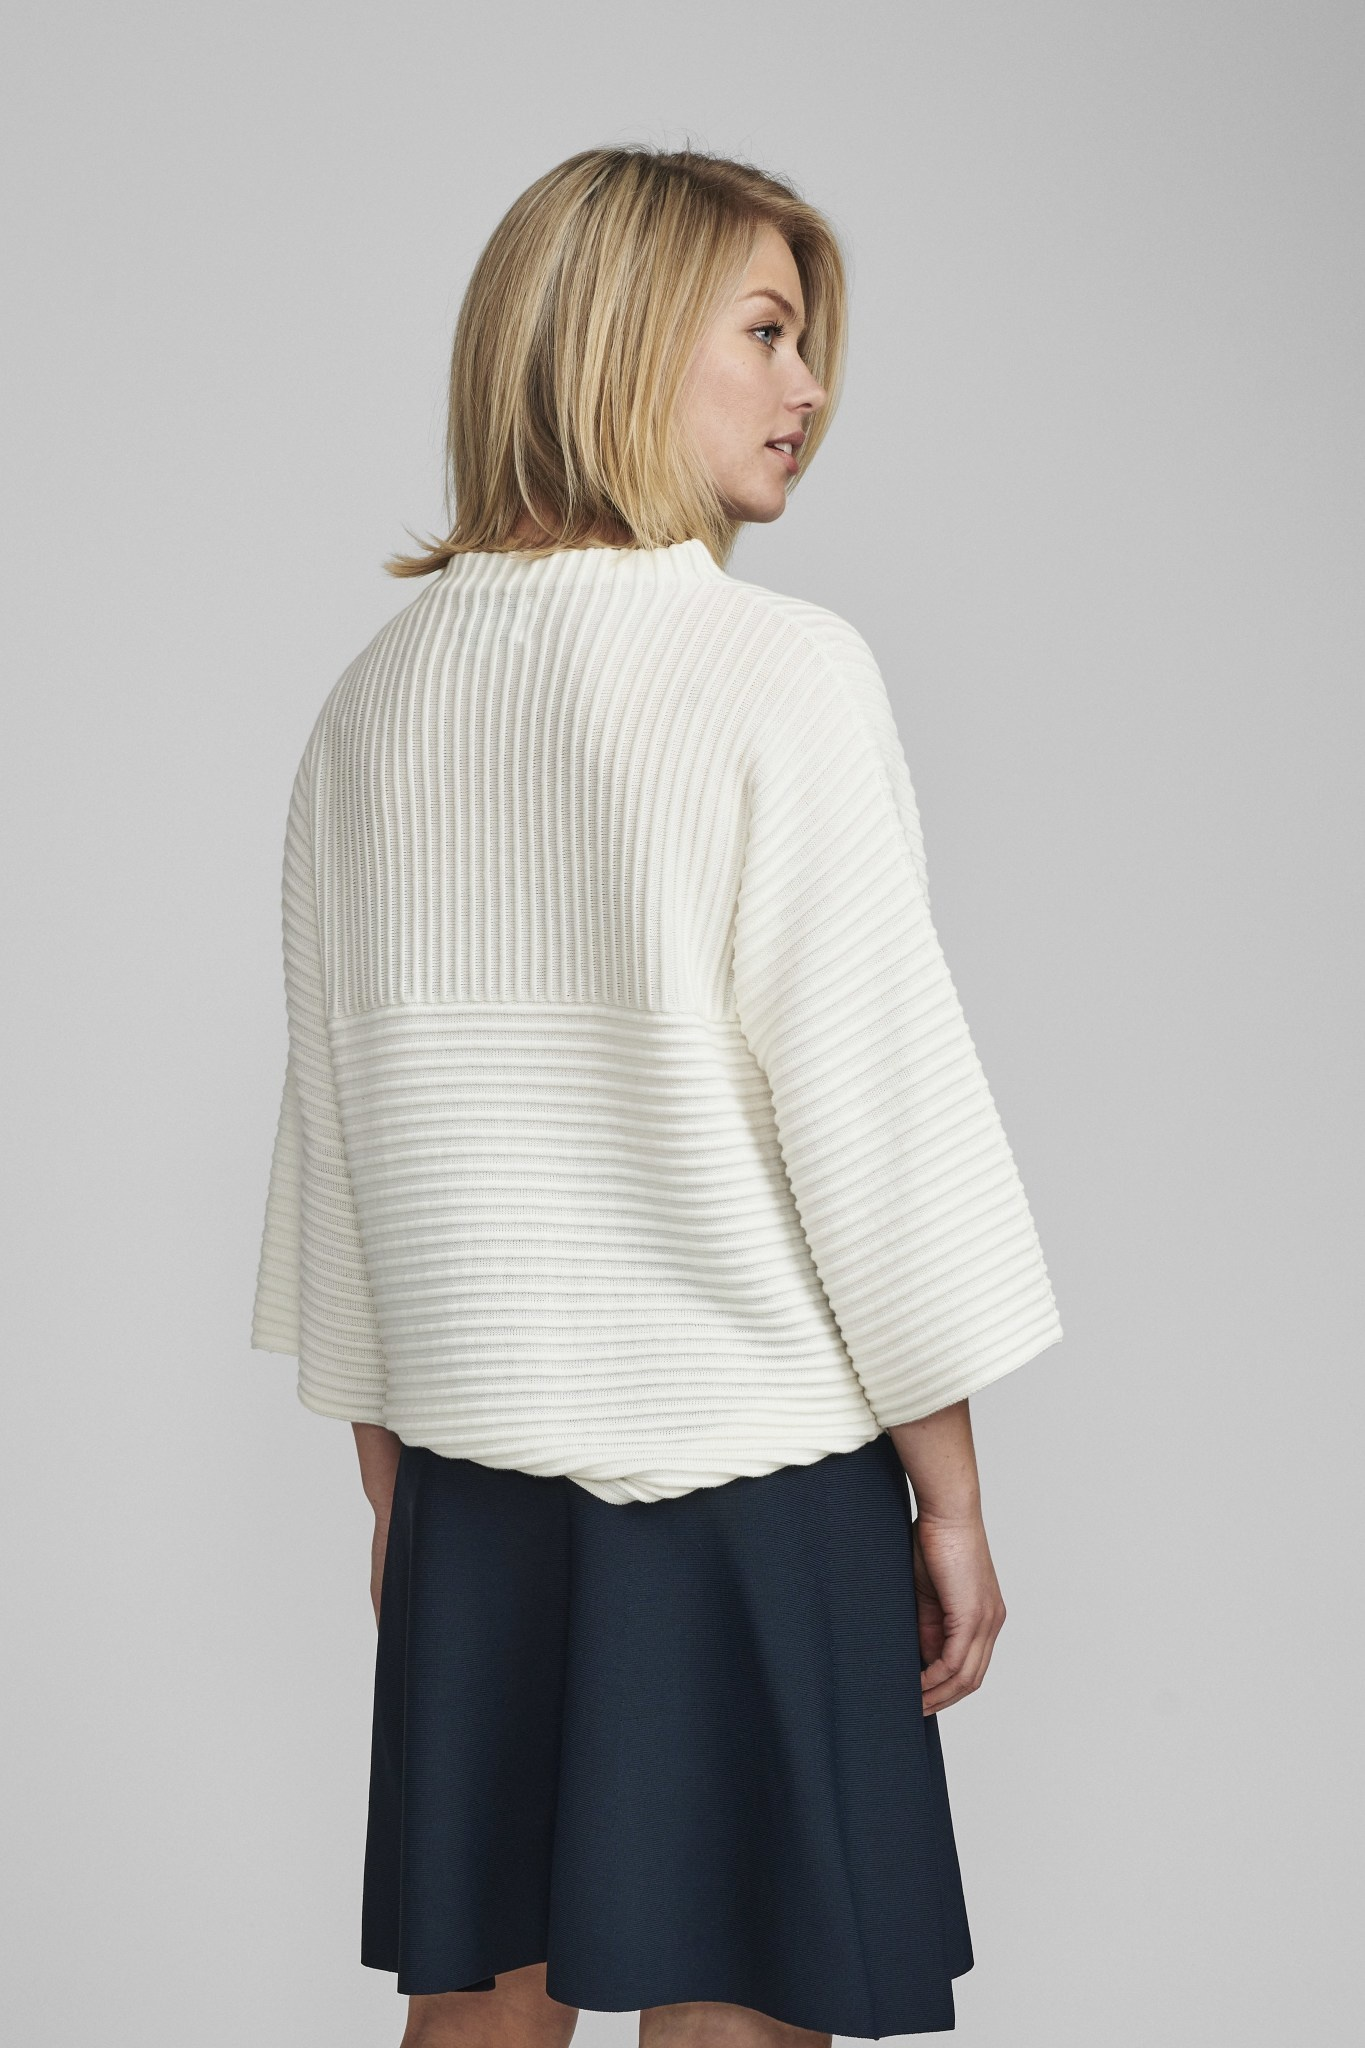 Nümph Irmelin O-neck pullover - NOOS - Wit